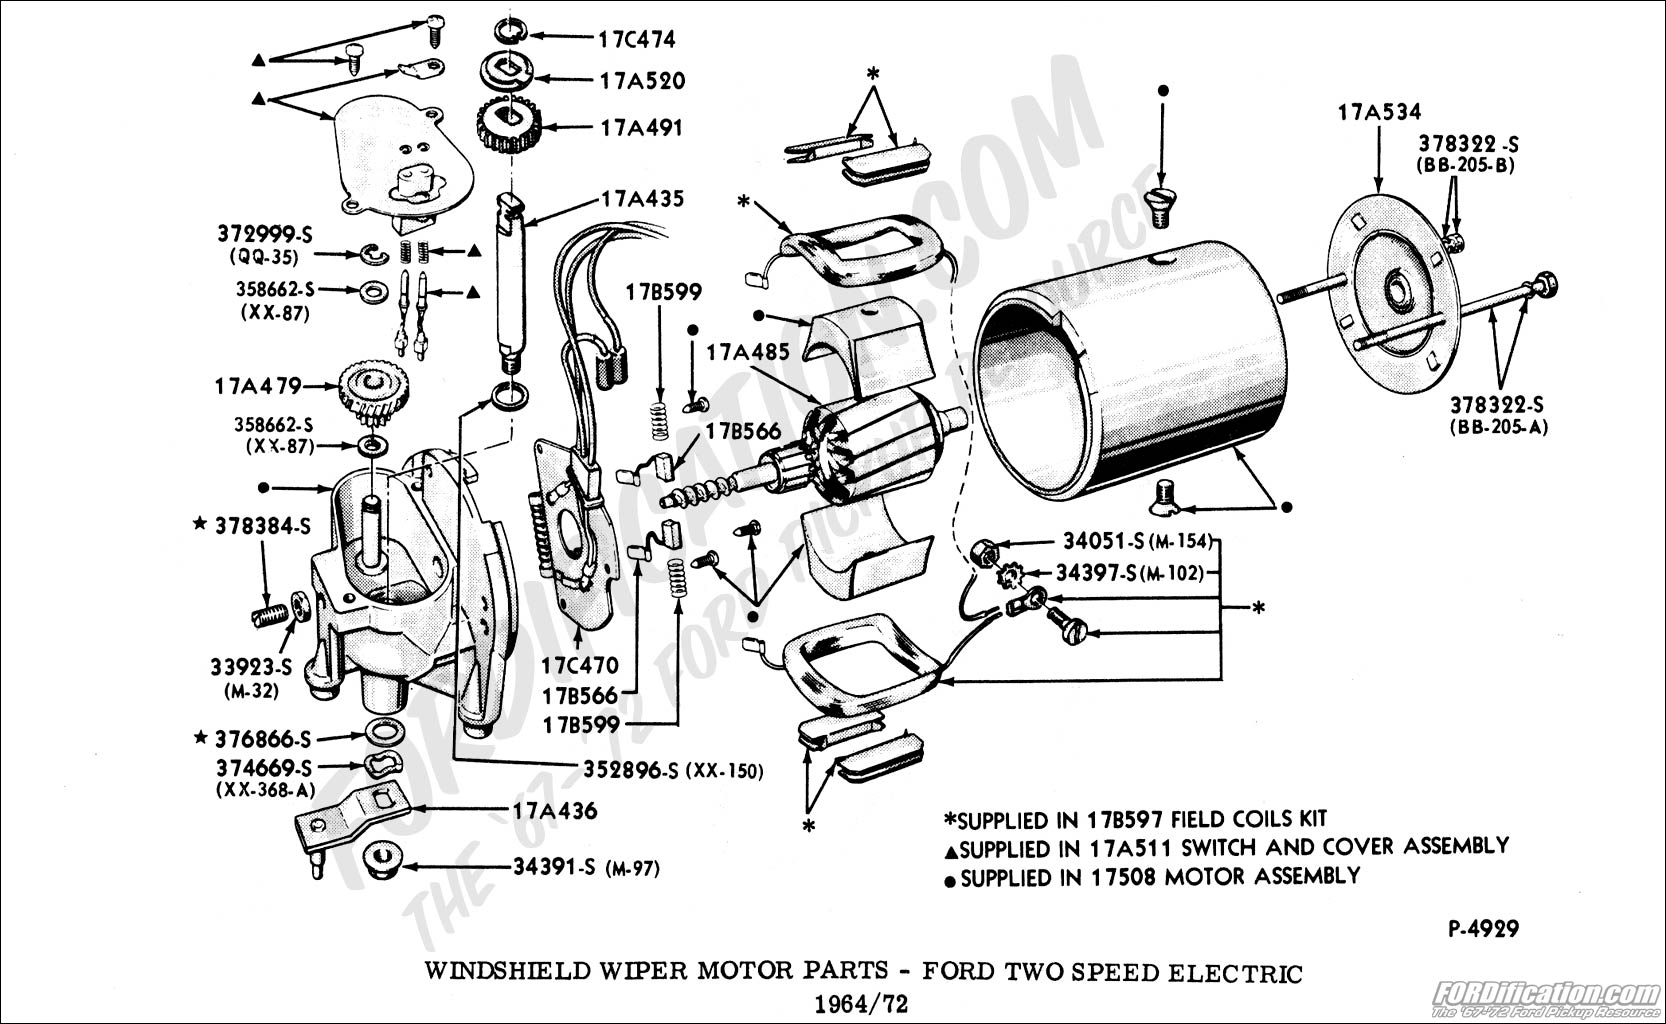 Ford Truck Technical Drawings And Schematics Section I 1977 Evinrude Wiring Diagram Free Picture Schematic Windshield Wiper Motor Parts